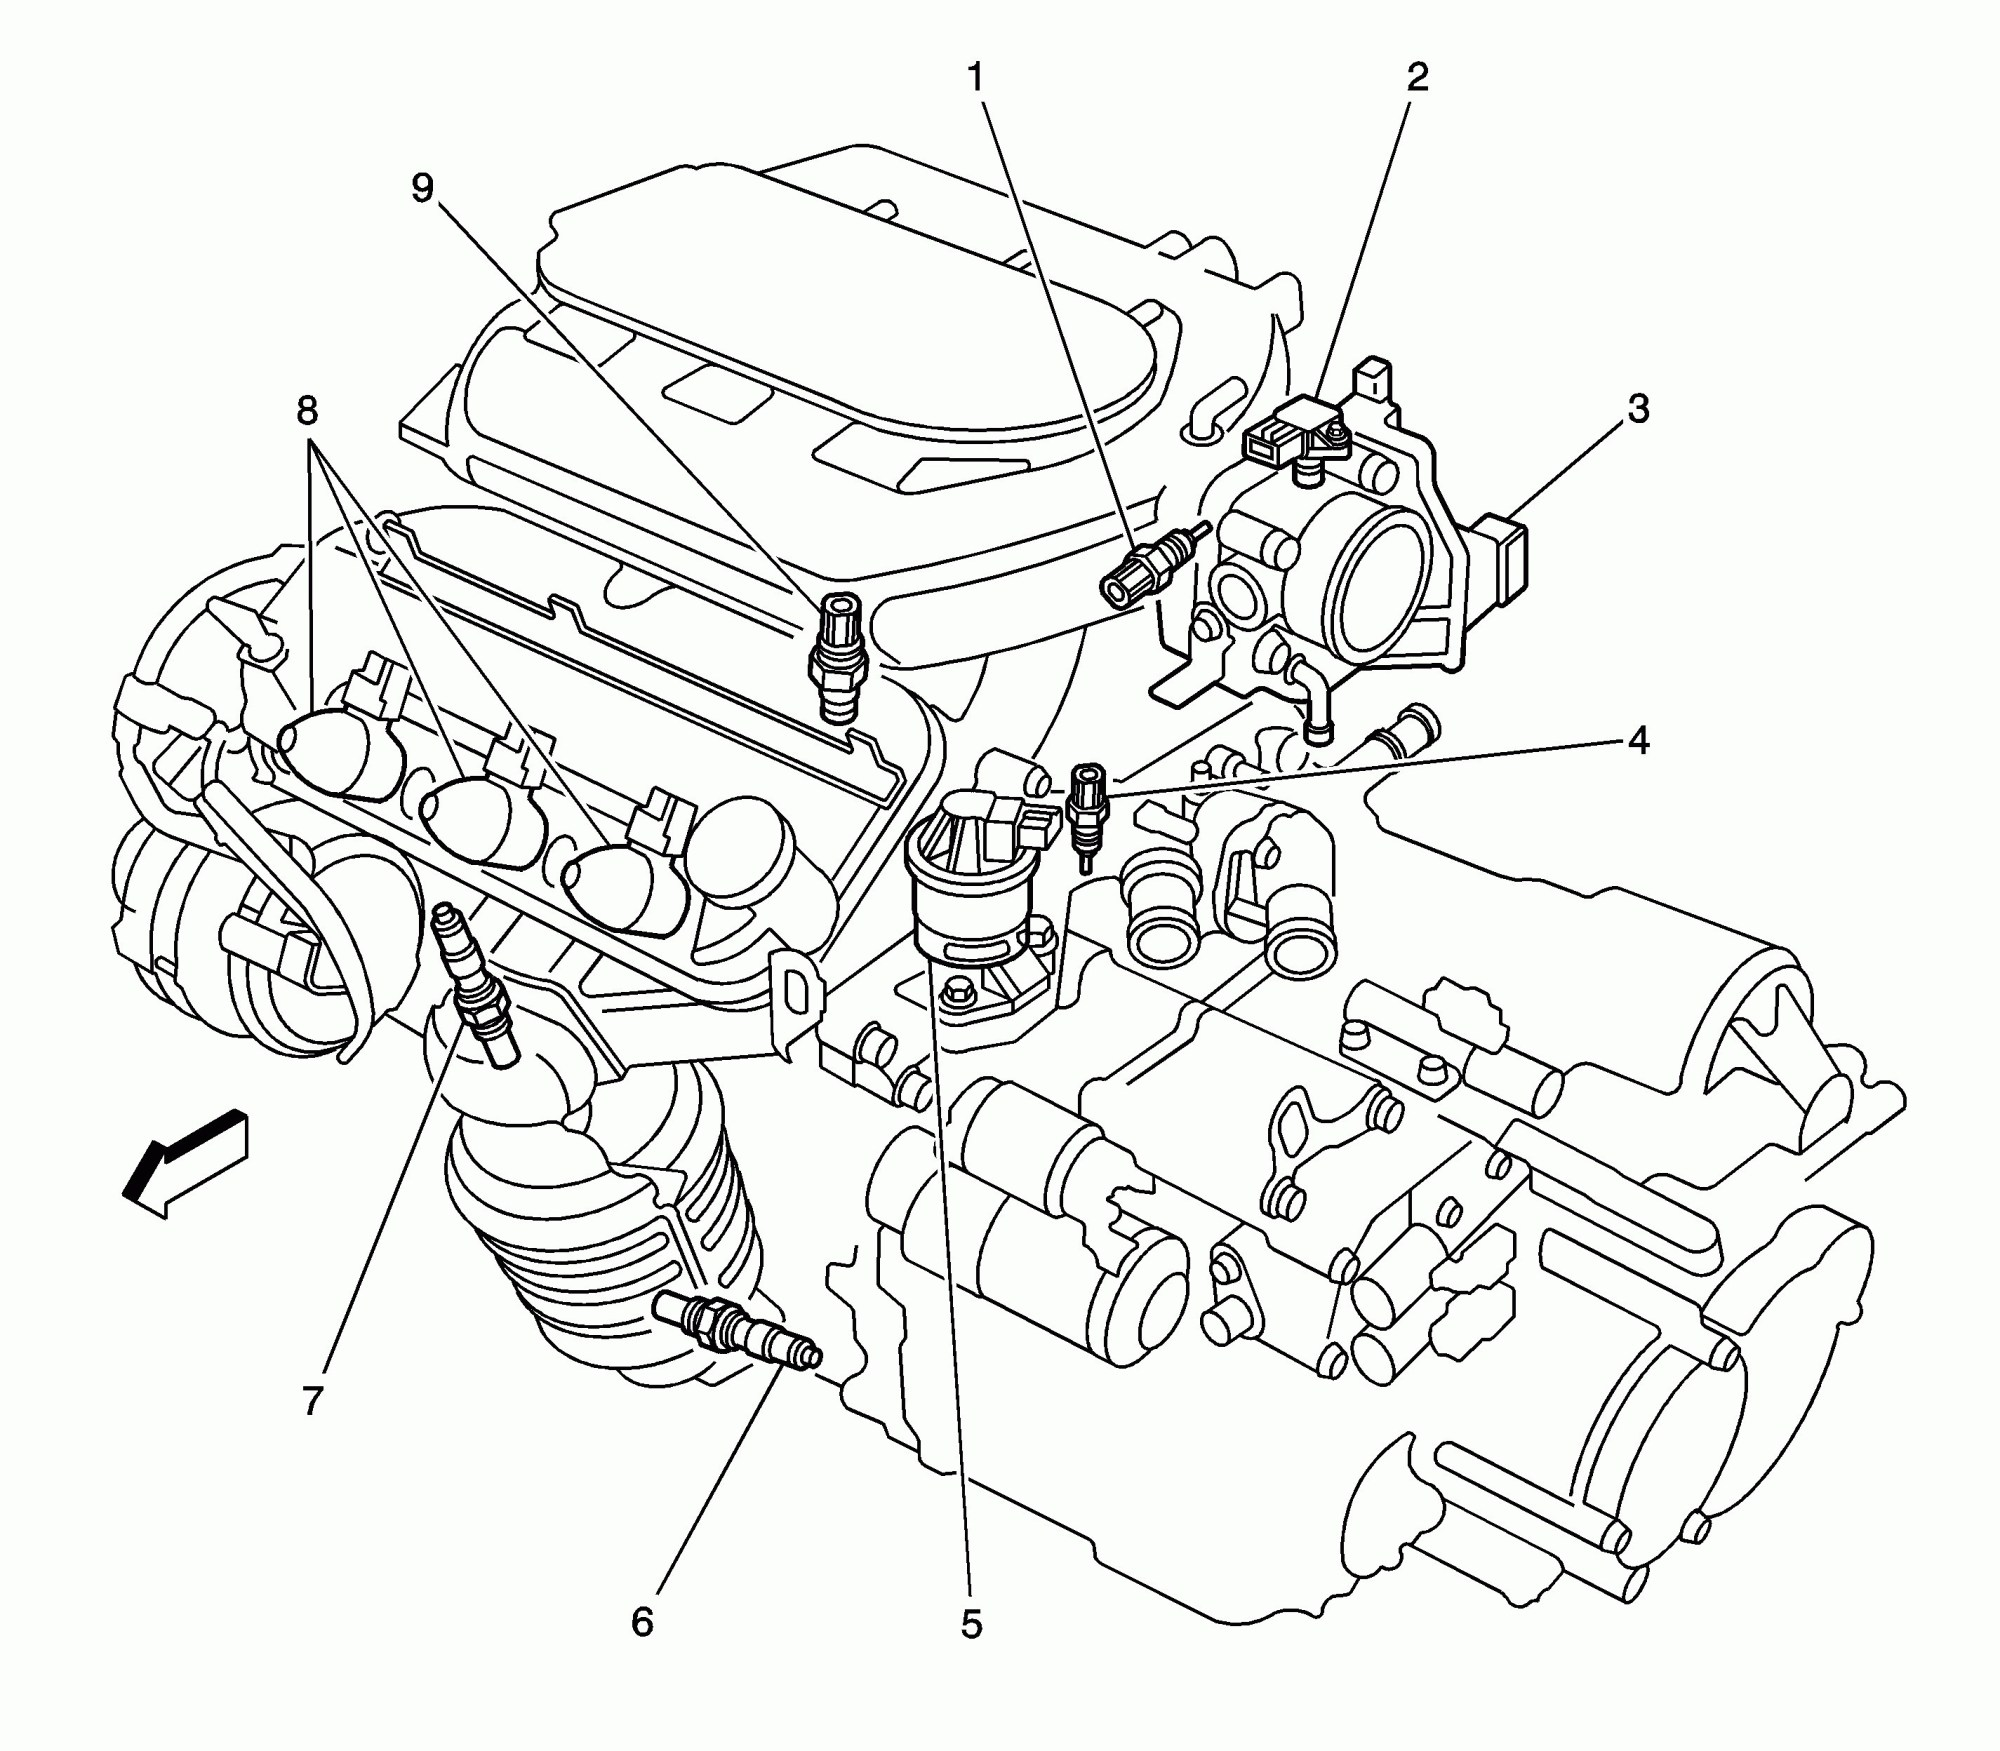 hight resolution of 2007 saturn aura engine diagram cool review about saturn aura 2008 with awesome of 2007 saturn